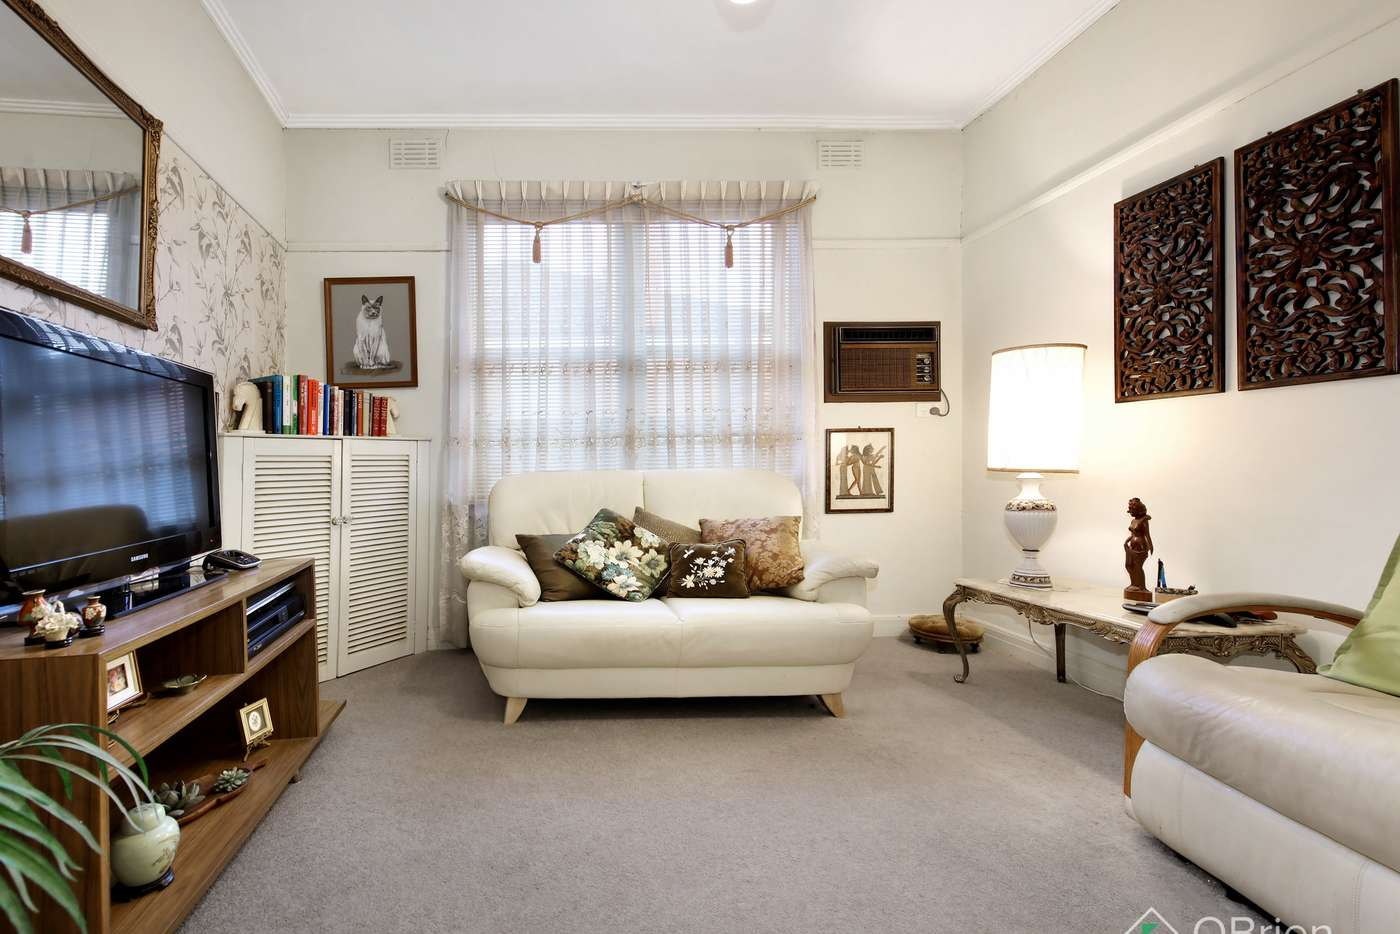 Fifth view of Homely house listing, 16 Dermot Street, Oakleigh South VIC 3167